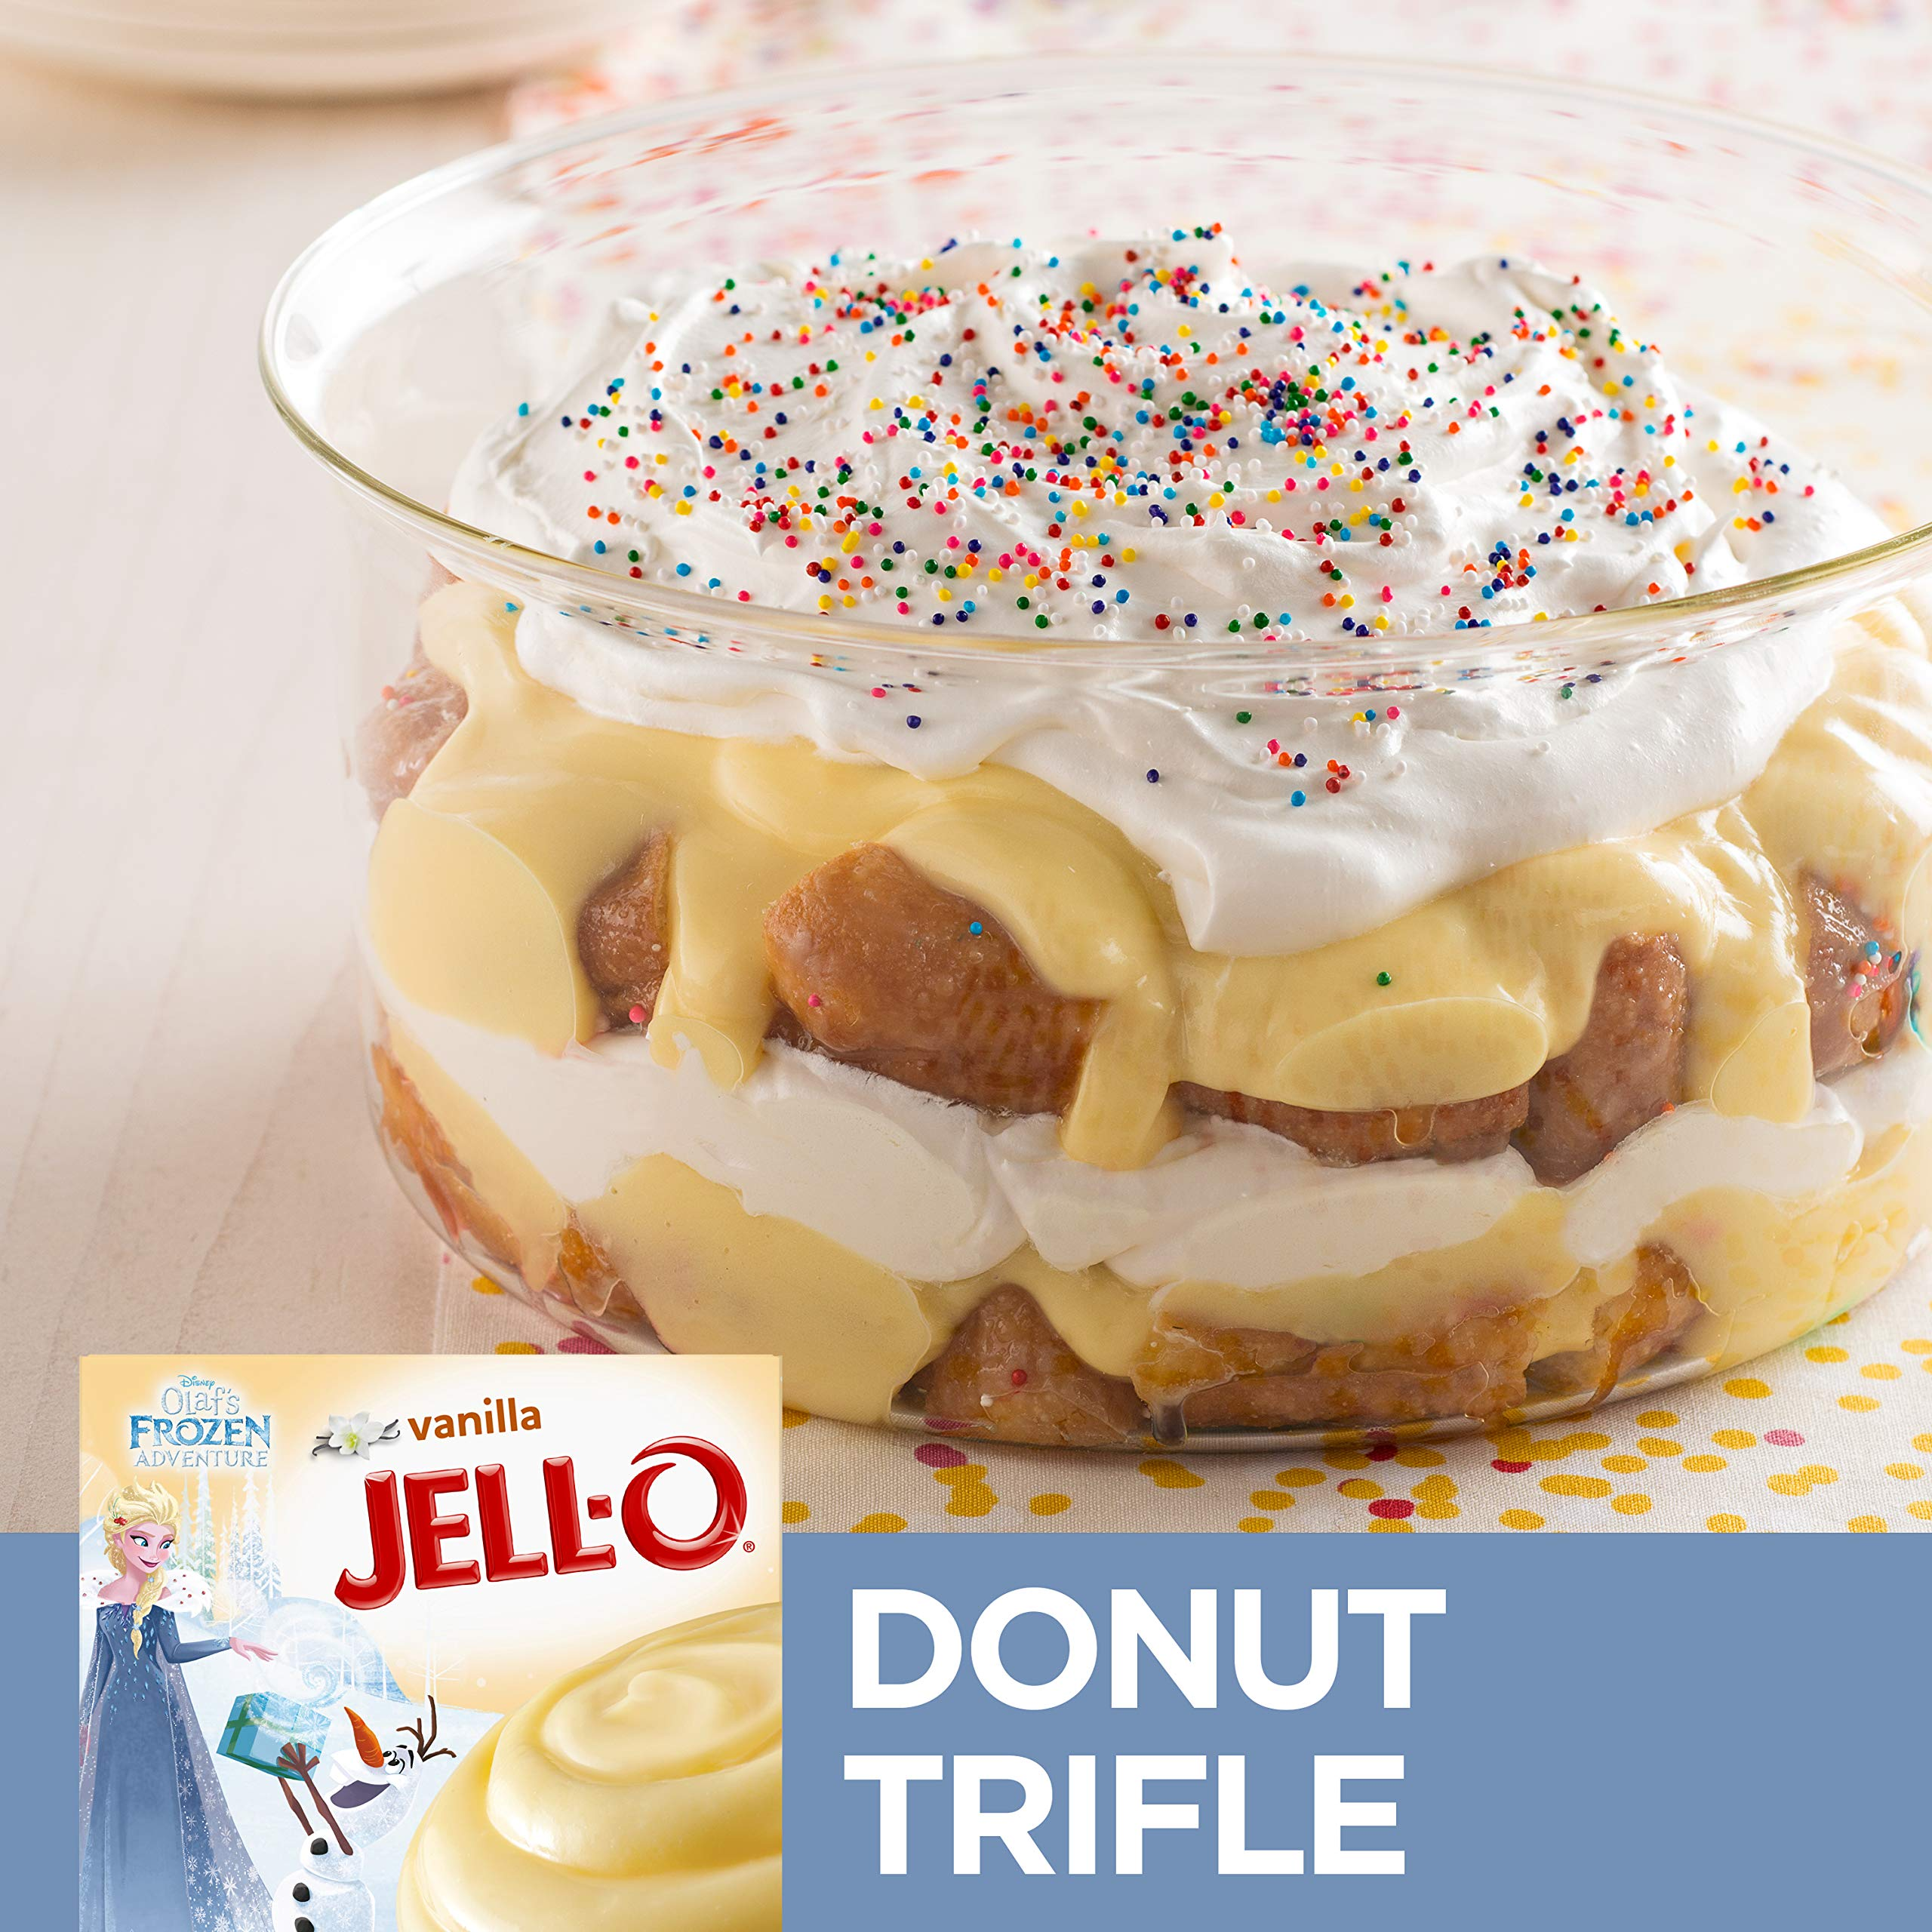 Jell-O Instant Vanilla Pudding & Pie Filling, 3.4 oz Box by Jell-O (Image #5)